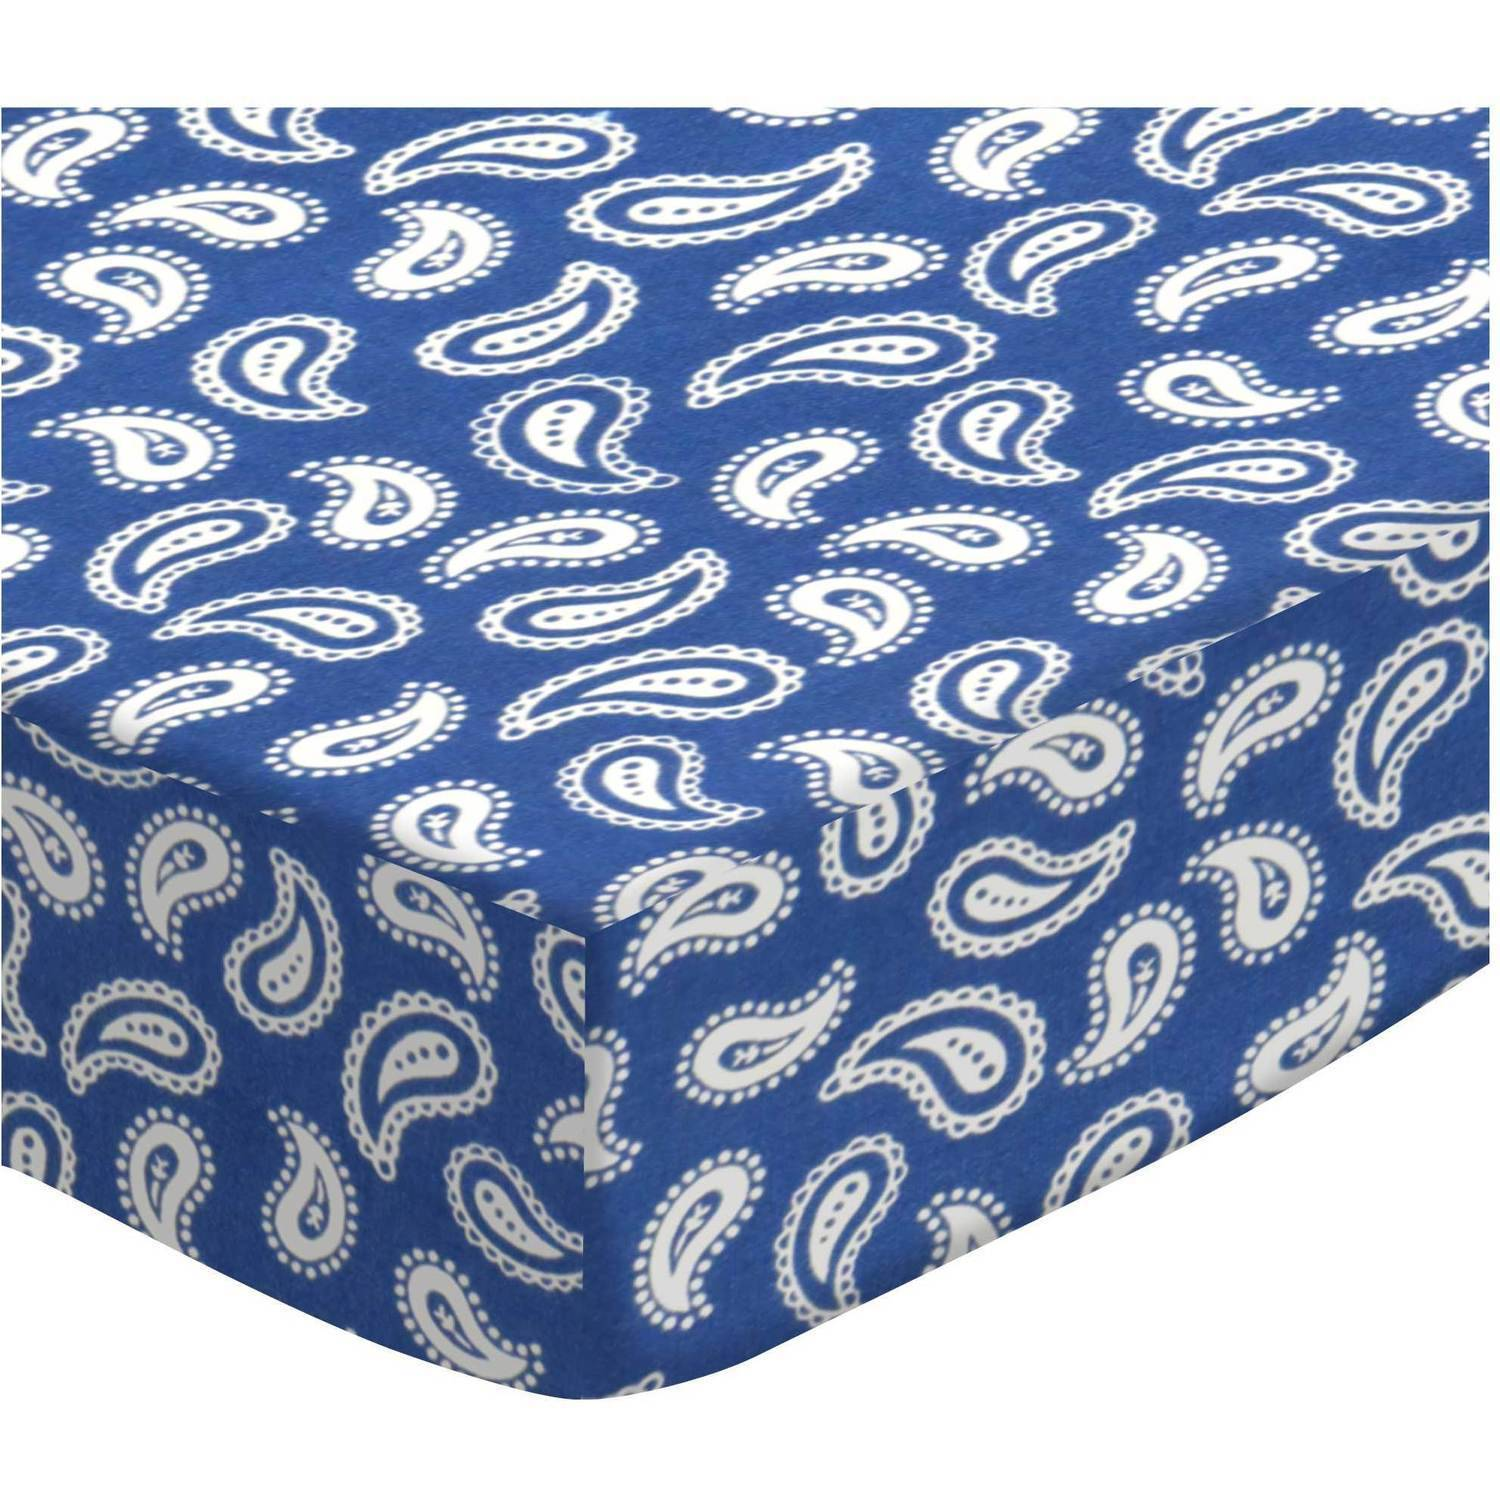 SheetWorld Fitted Bassinet Sheet - Primary Paisley White On Navy Woven (Choose Your Color)